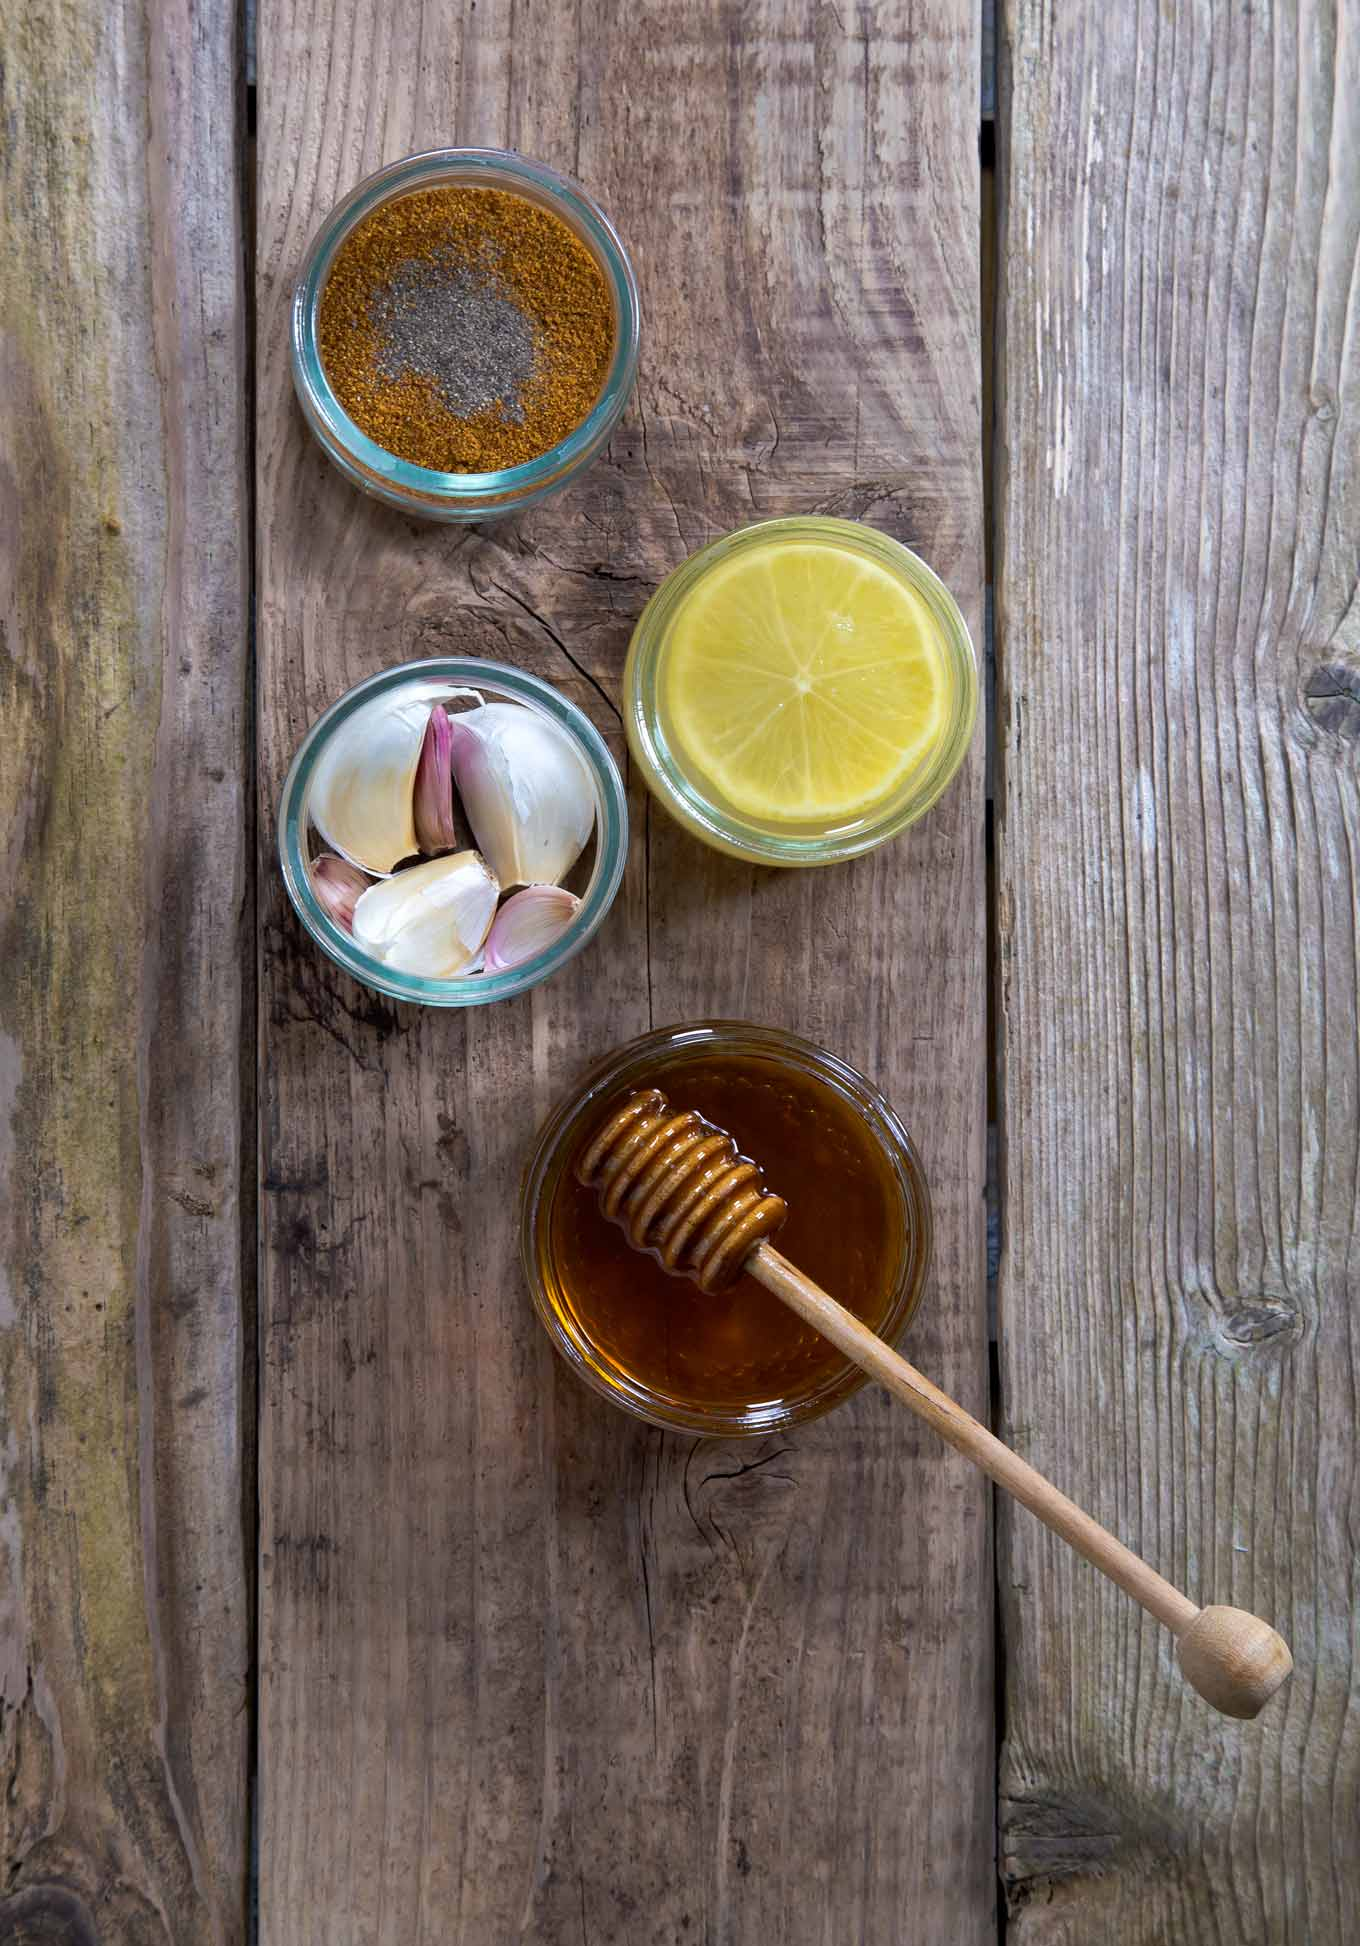 Garlic honey syrup for sore throat recipe - homemade and natural sore throat remedy which also helps with a cough and cold symptoms.